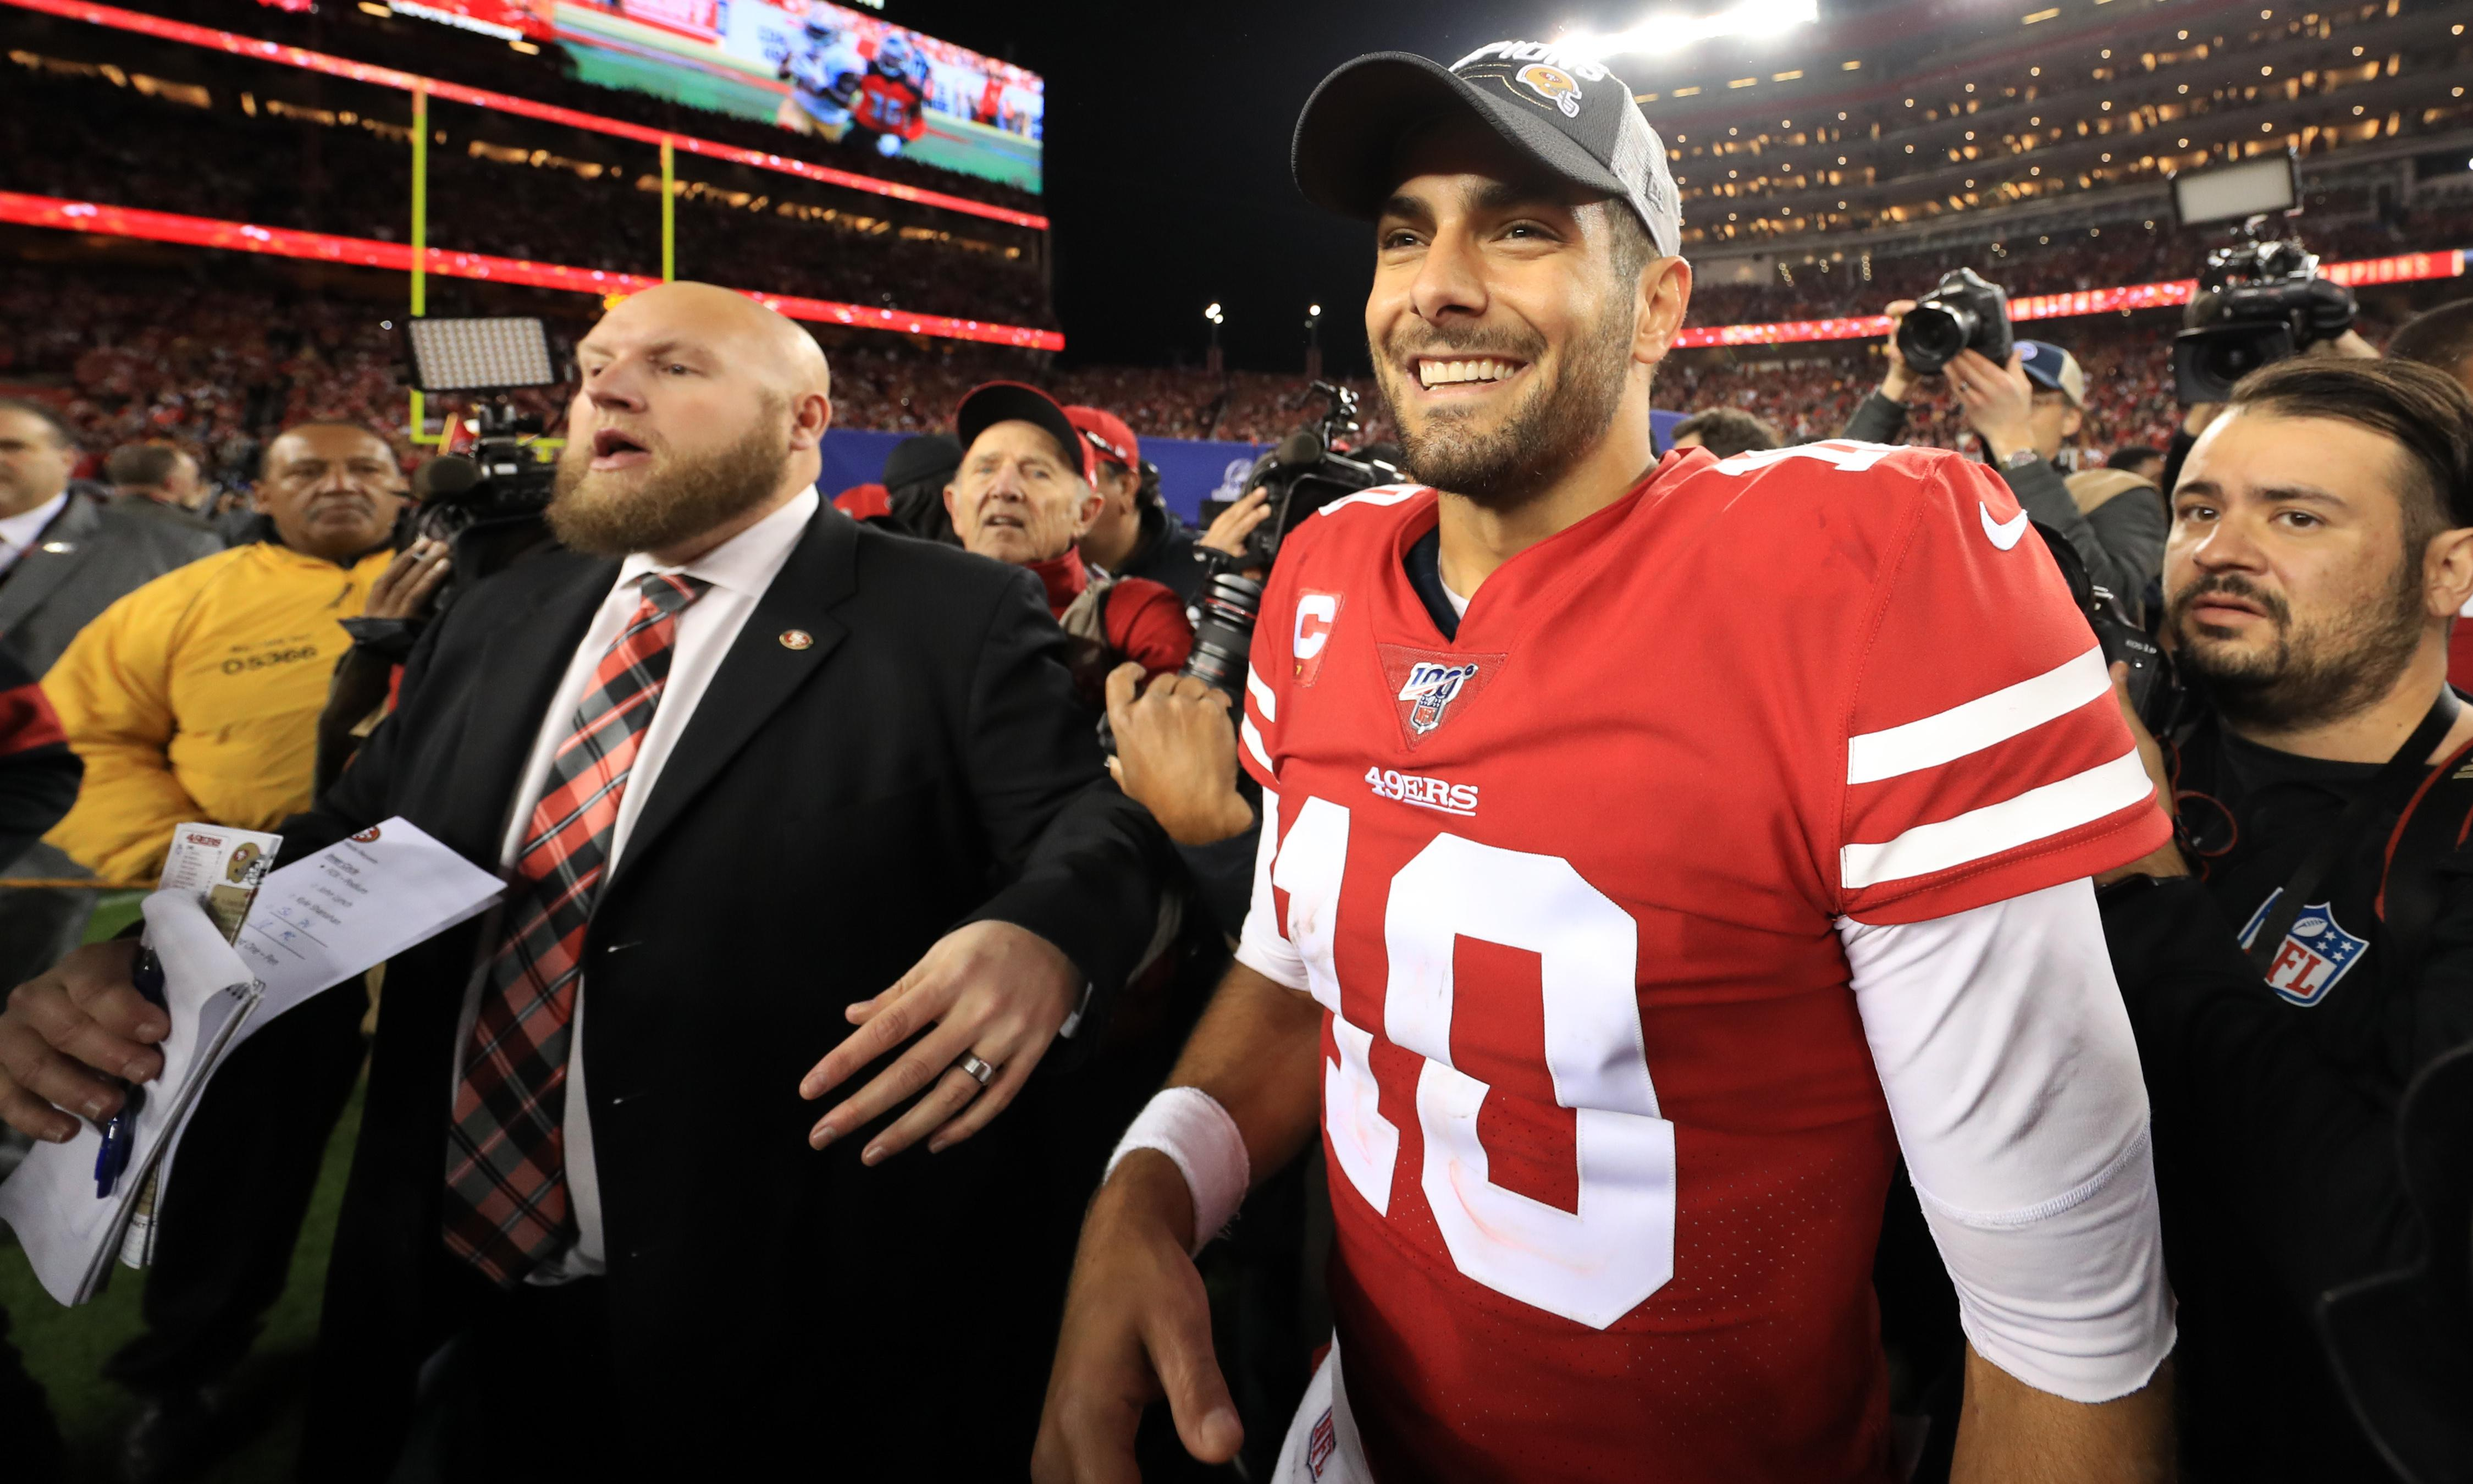 Eight passes, 0 TDs. Could Jimmy Garoppolo's Super Bowl path have been any easier?